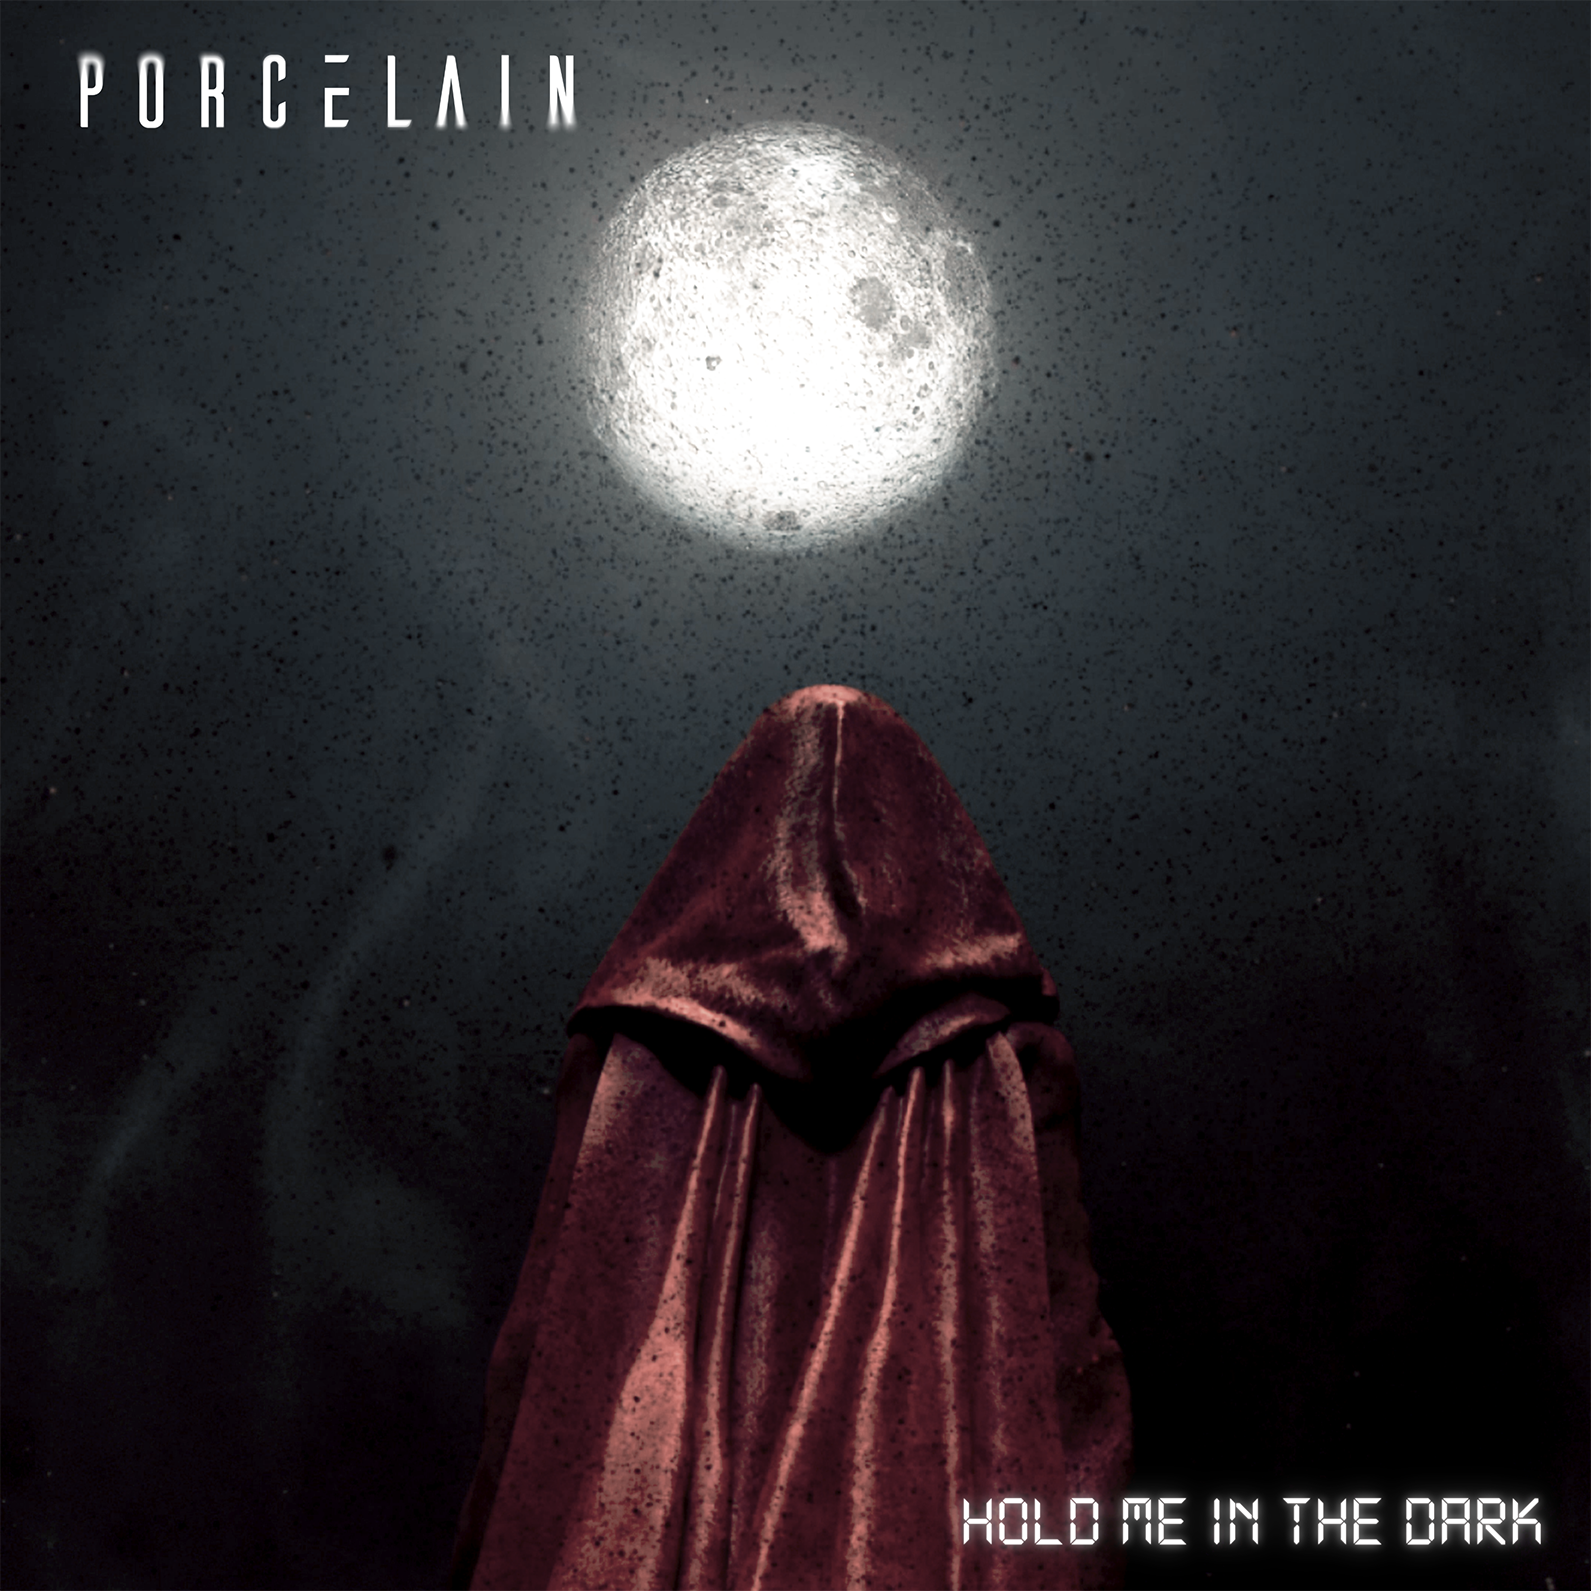 Anonymous music collective PORCELAIN ask listeners to choose dark versus light on new single 'Hold Me In The Dark'